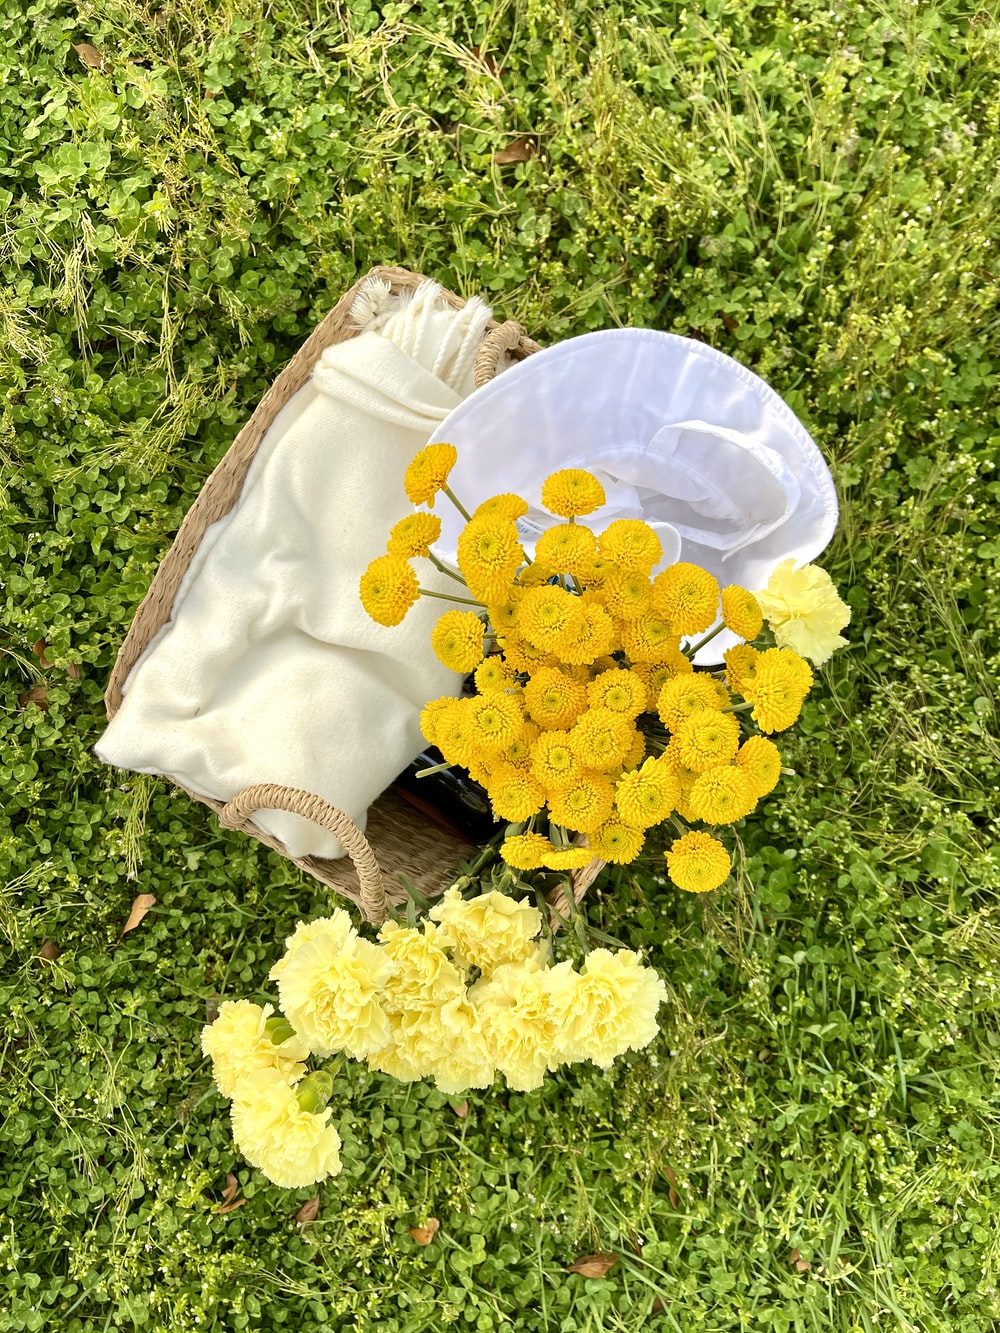 yellow flowers on brown leather bag on green grass field during daytime